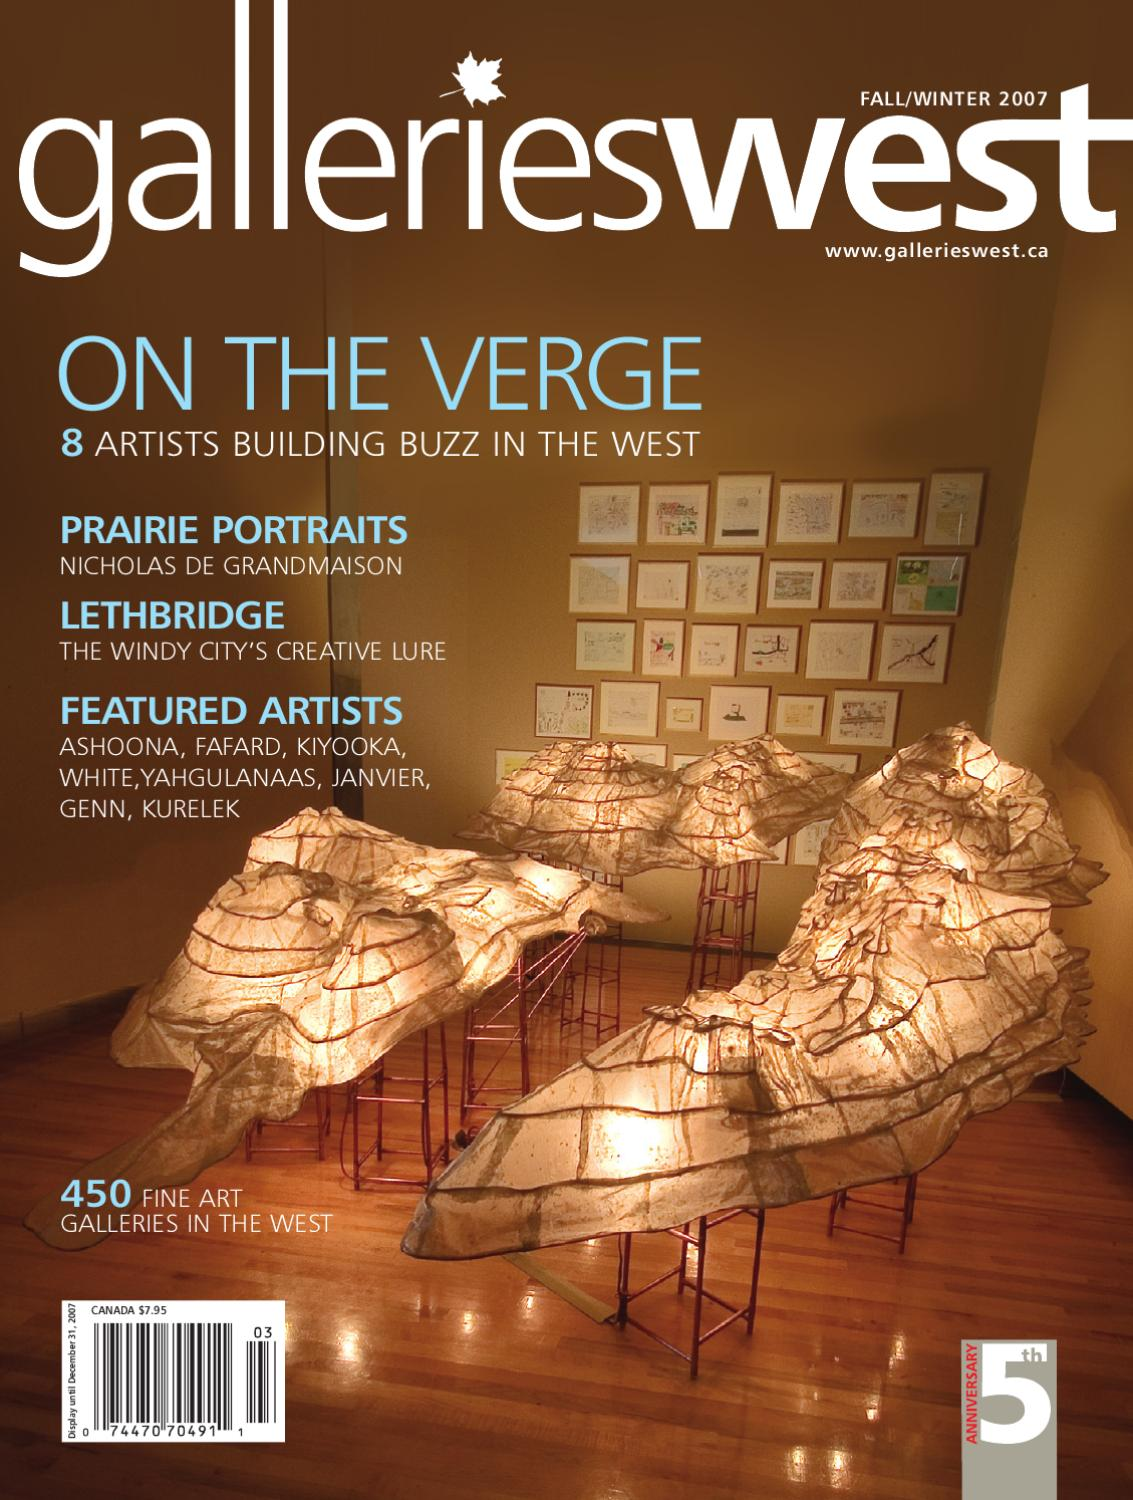 db9f5b020fe0 Galleries West Fall Winter 2007 by Galleries West - issuu